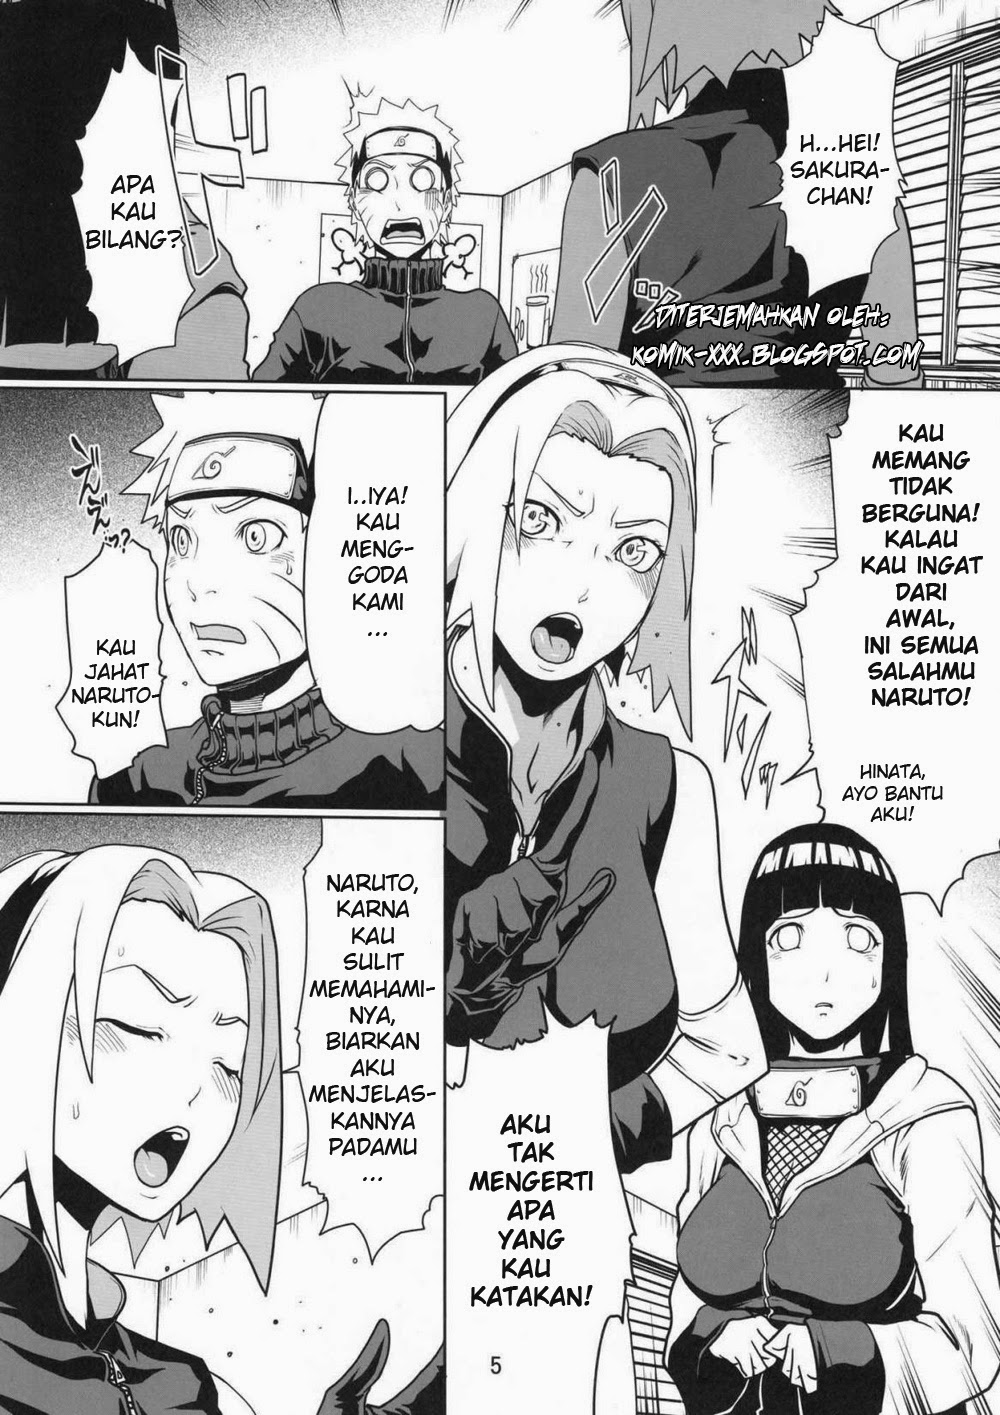 Those on! Naruto komik hentai hinata pity